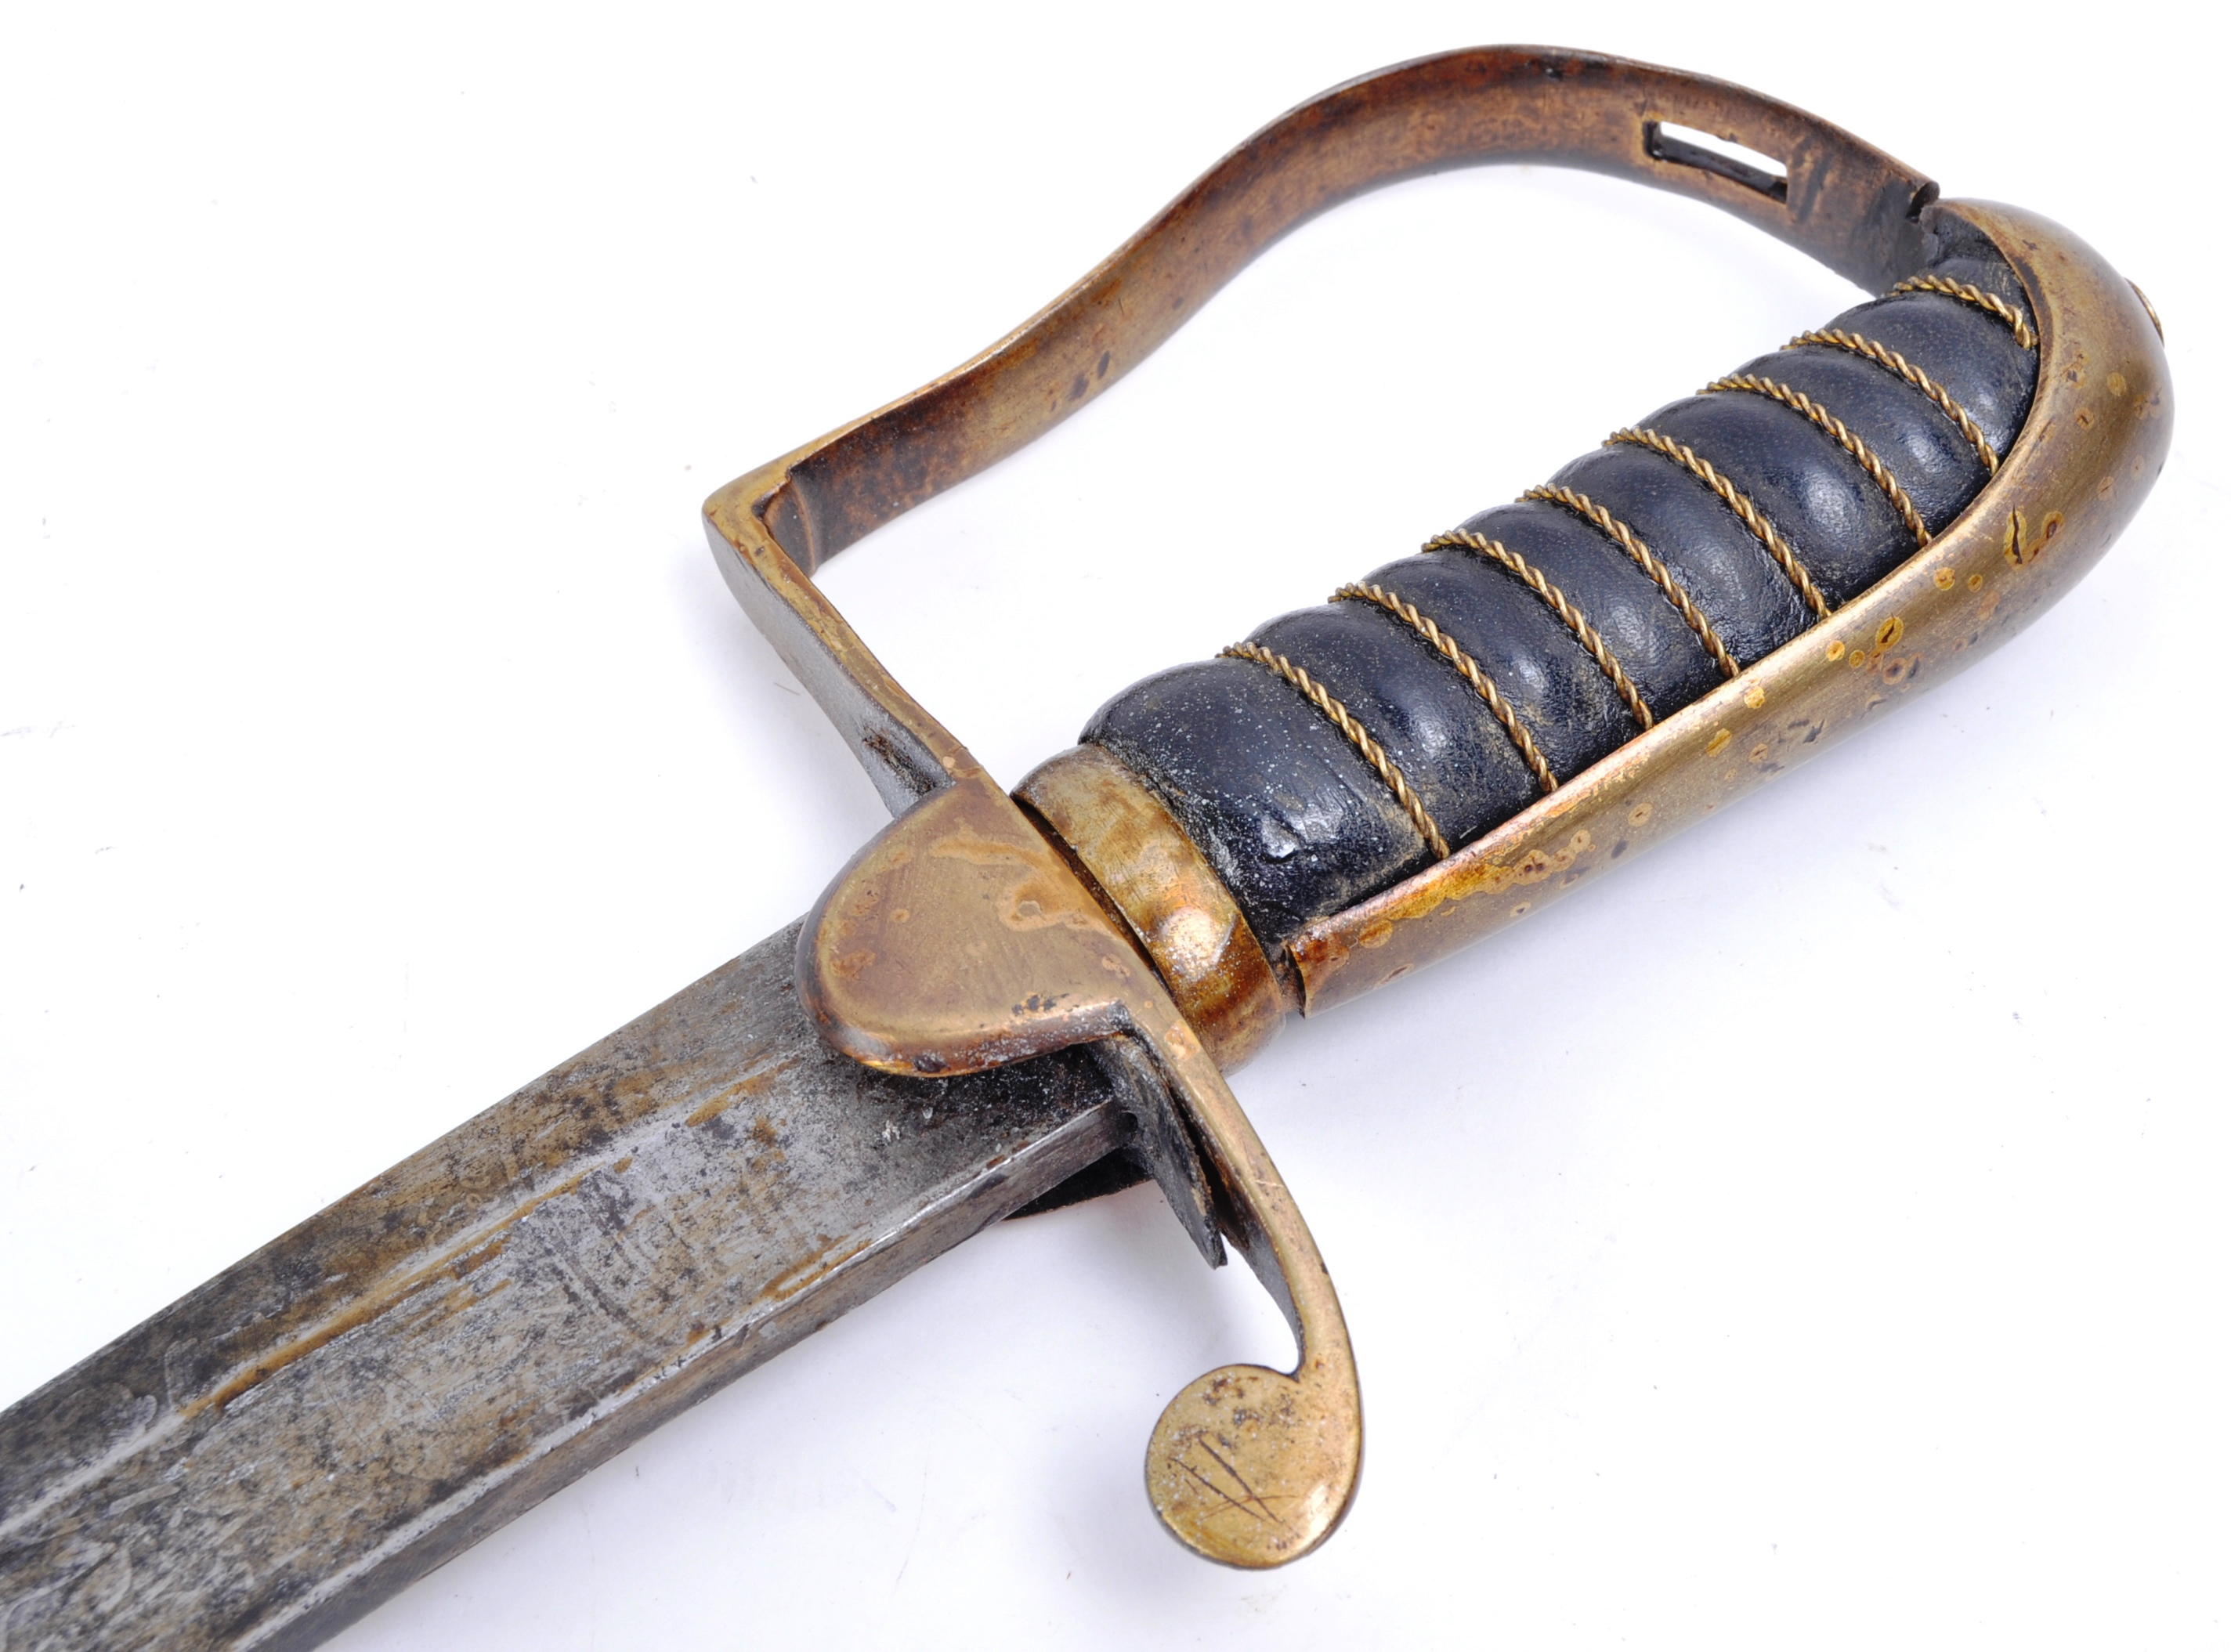 ANTIQUE BRITISH 1788 PATTERN LIGHT CAVALRY TROOPERS SWORD - Image 7 of 7